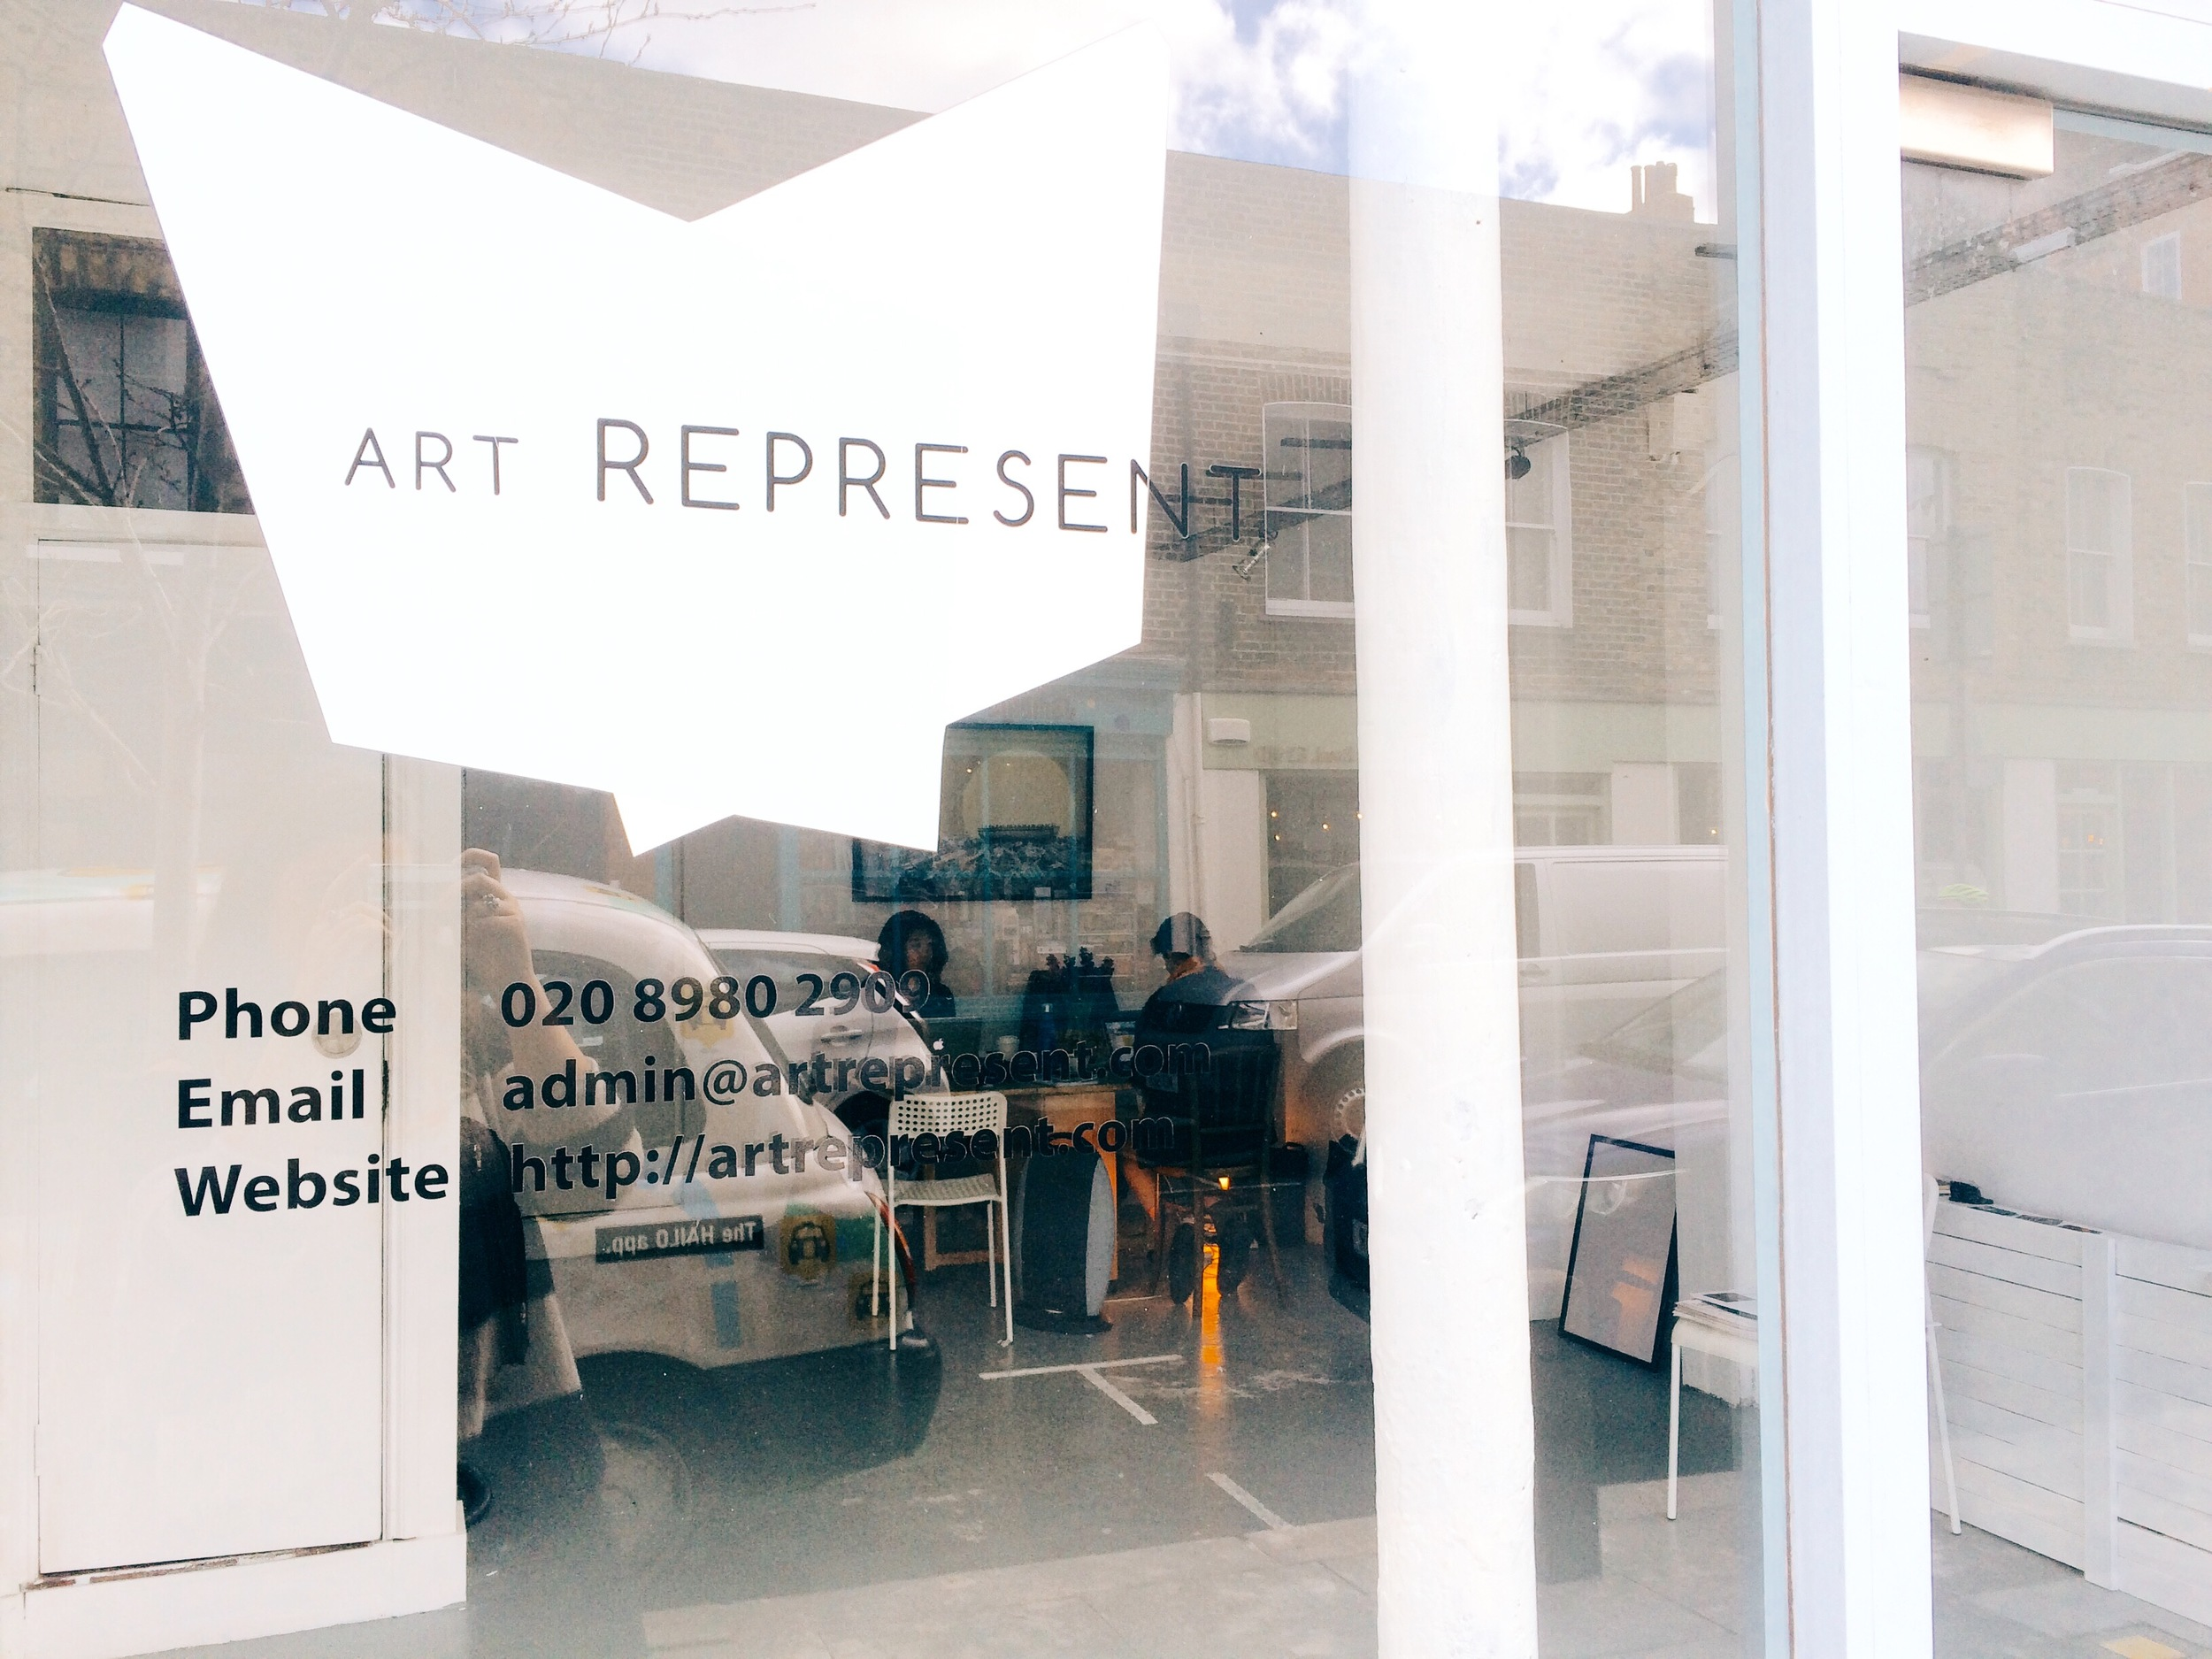 Art Represent's Baiqu & Charlotte at work in our gallery space in Bethnal Green